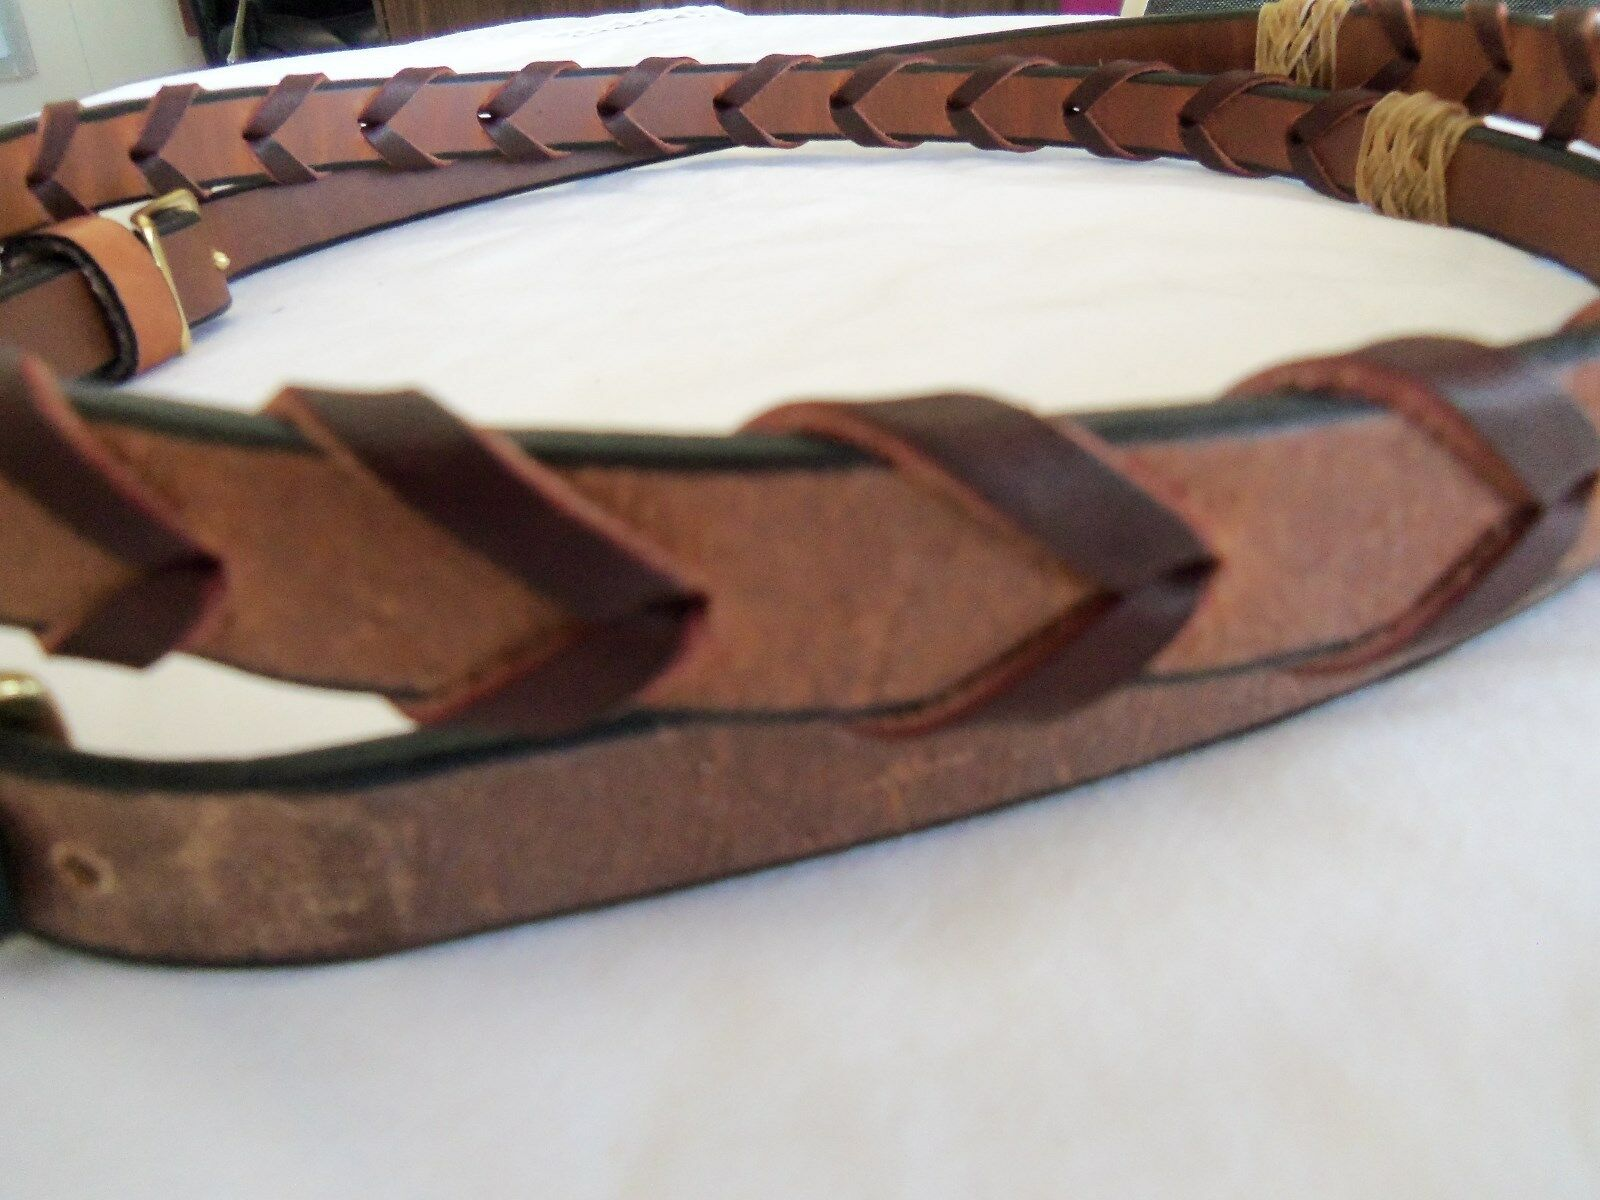 CONTEST LEATHER LATIGO LACED REINS--RAWHIDE-BRASS HARDWARE-NEW WITH WITH WITH TAGS 4bc8f8